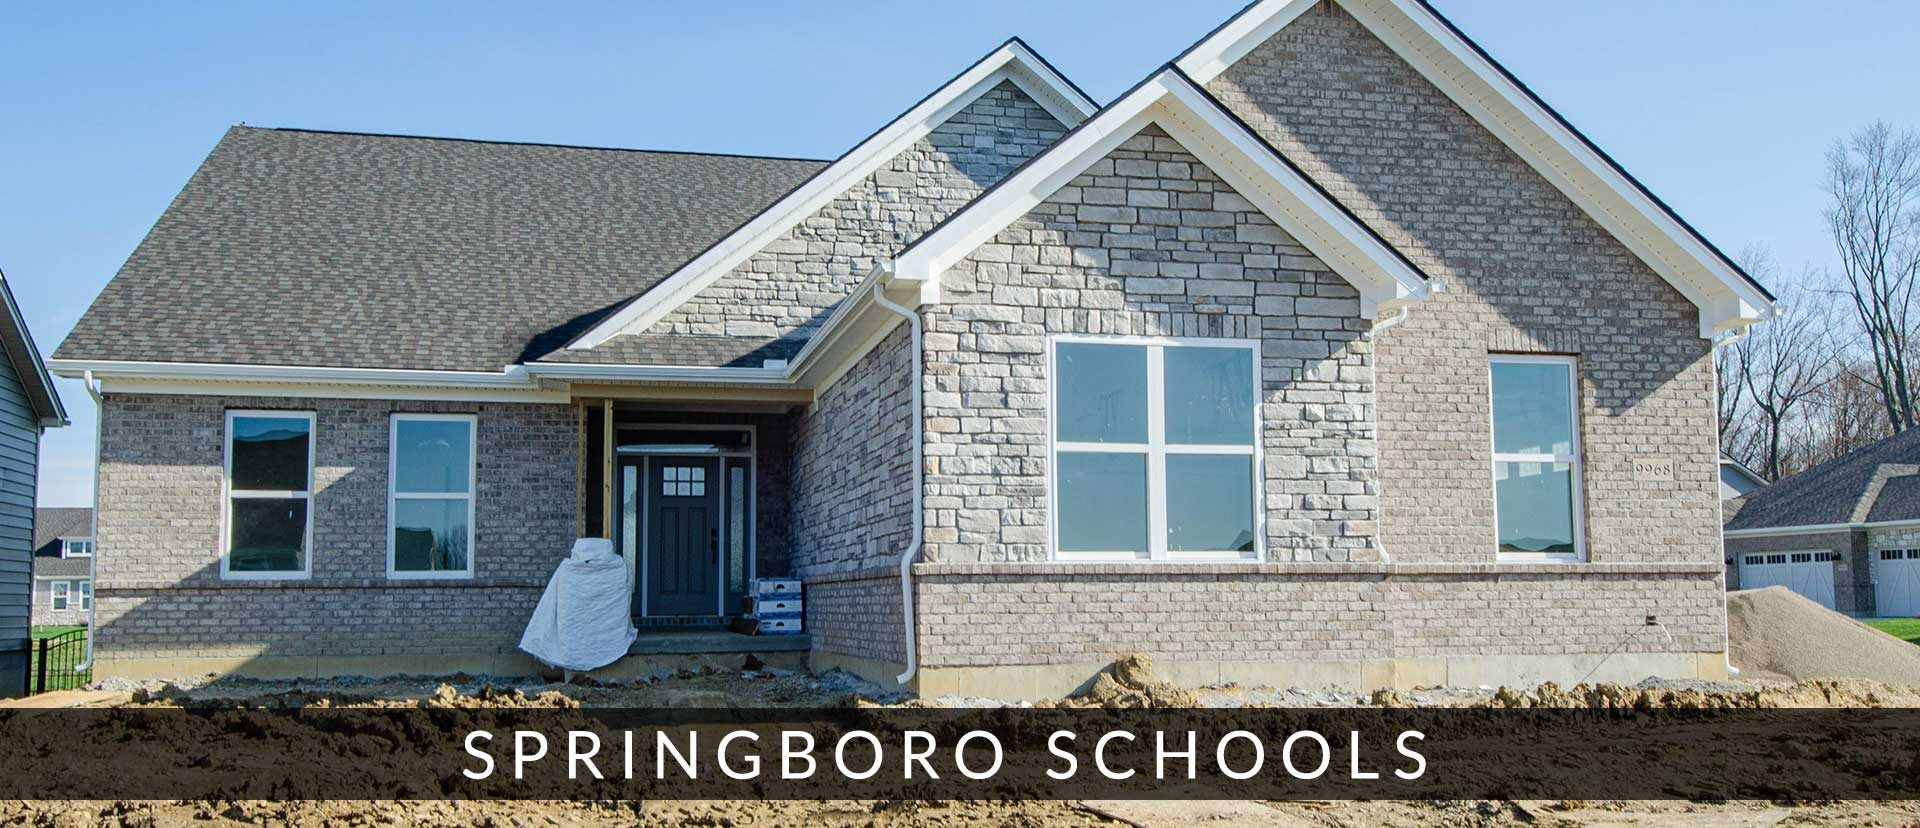 New homes in Springboro